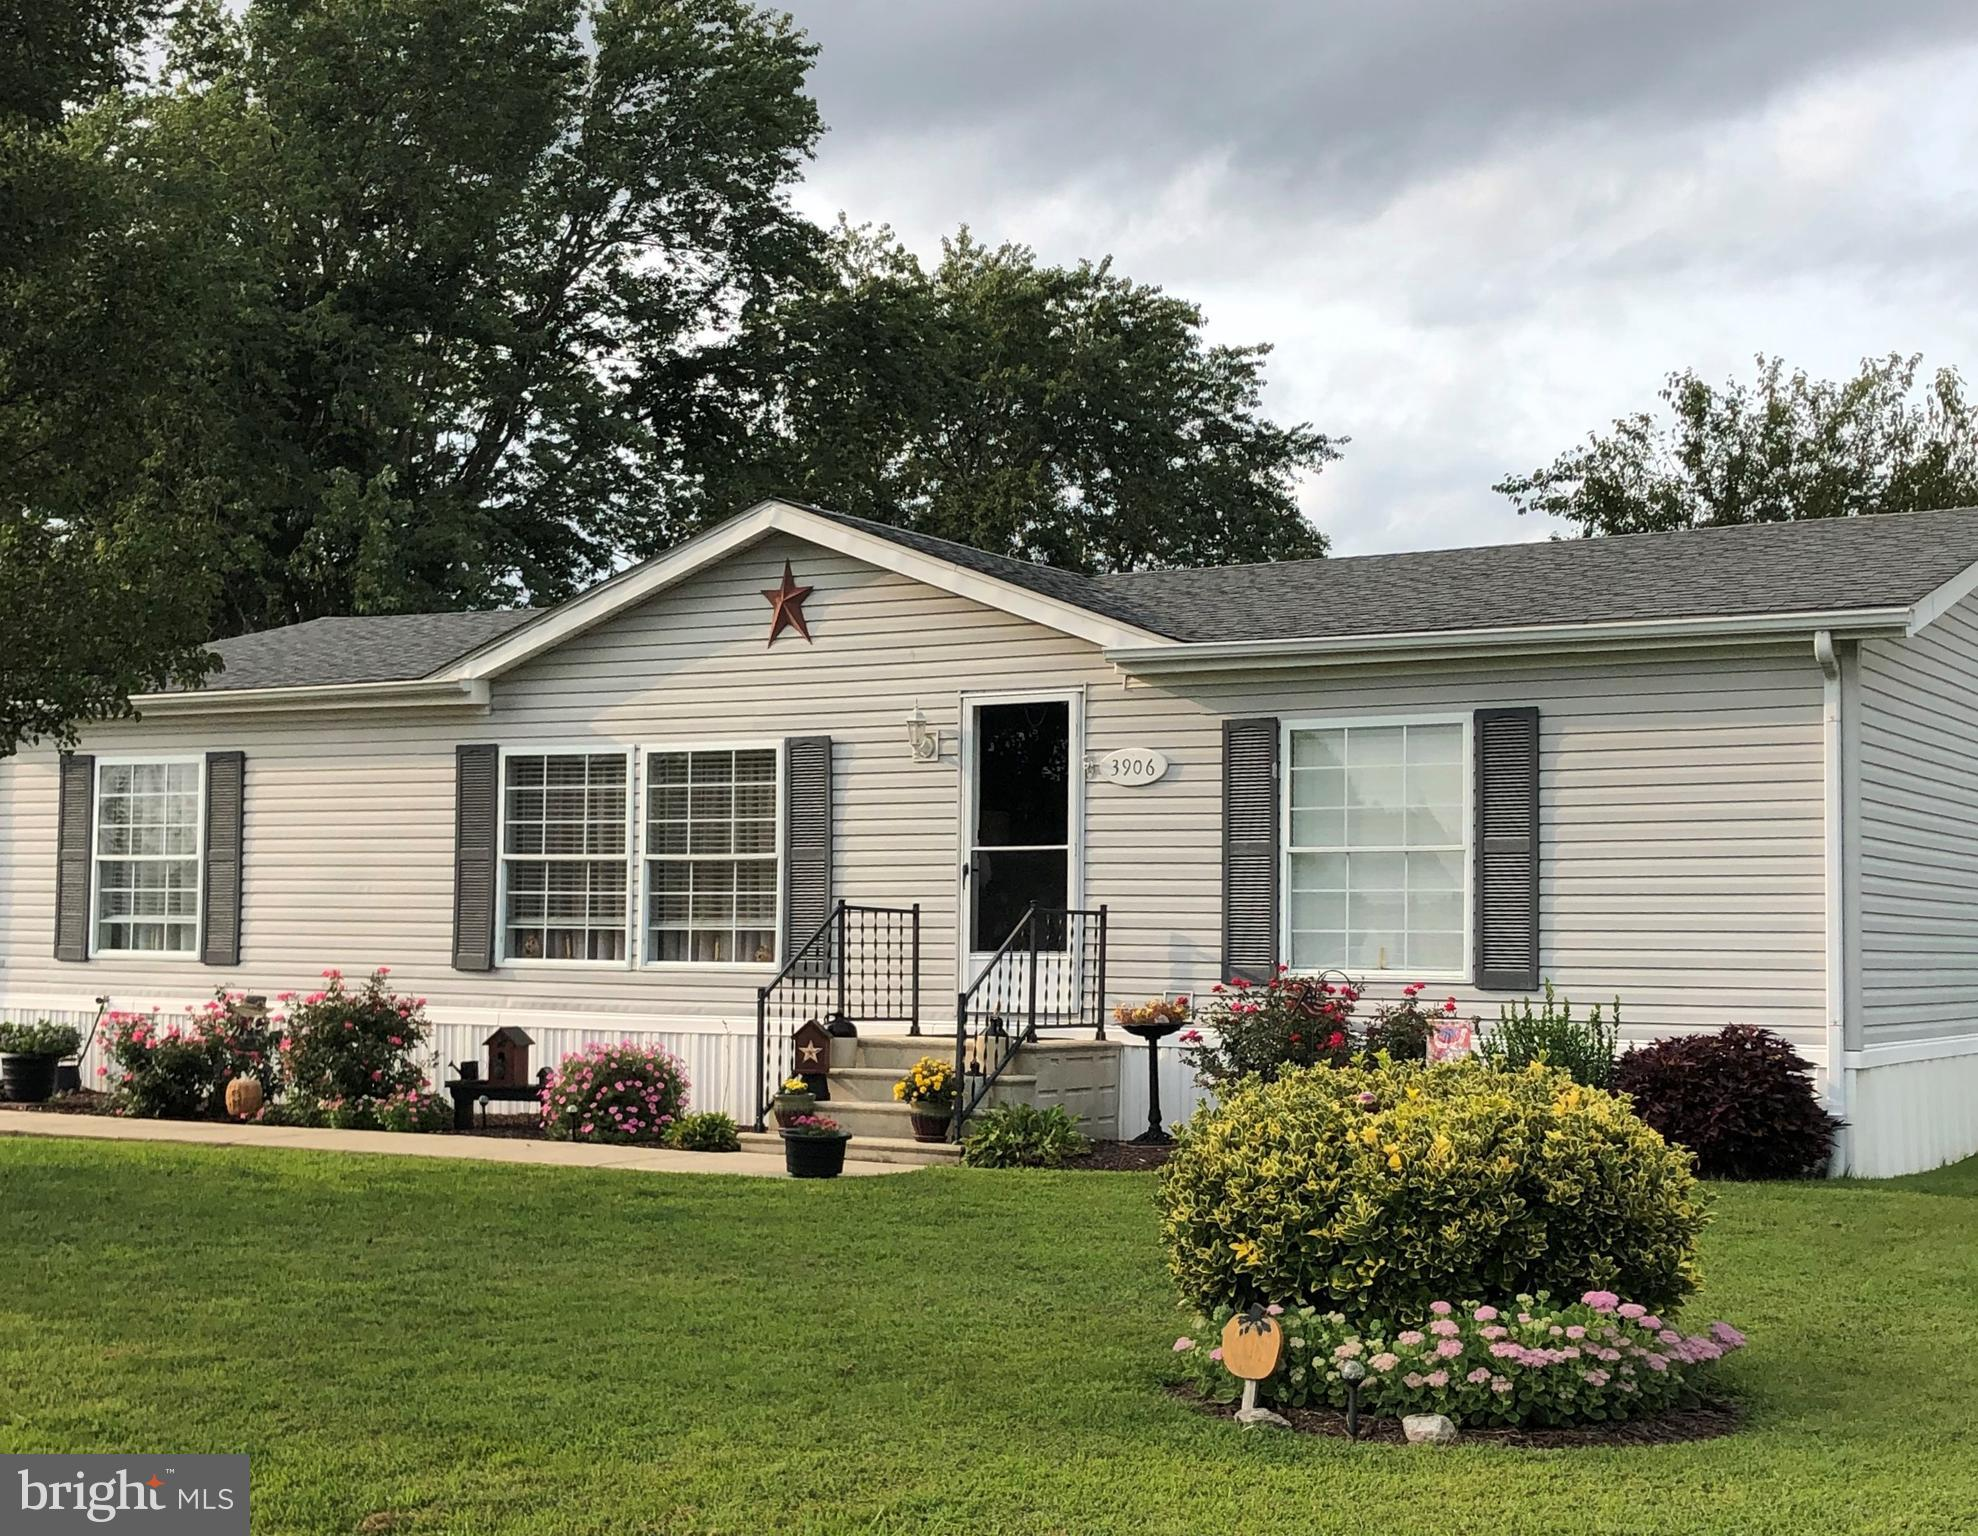 Wonderful like new manufactured home in a nice community.    Inside is neat as a pin.    Nice deck off the rear of home.   Two sheds included  with a third one open for discussion.   Yard is pristine with a variety of plantings.  Come  see this before its gone.    Buyers will need to be approved by park management - rules & regs apply.  Application fee may be required.